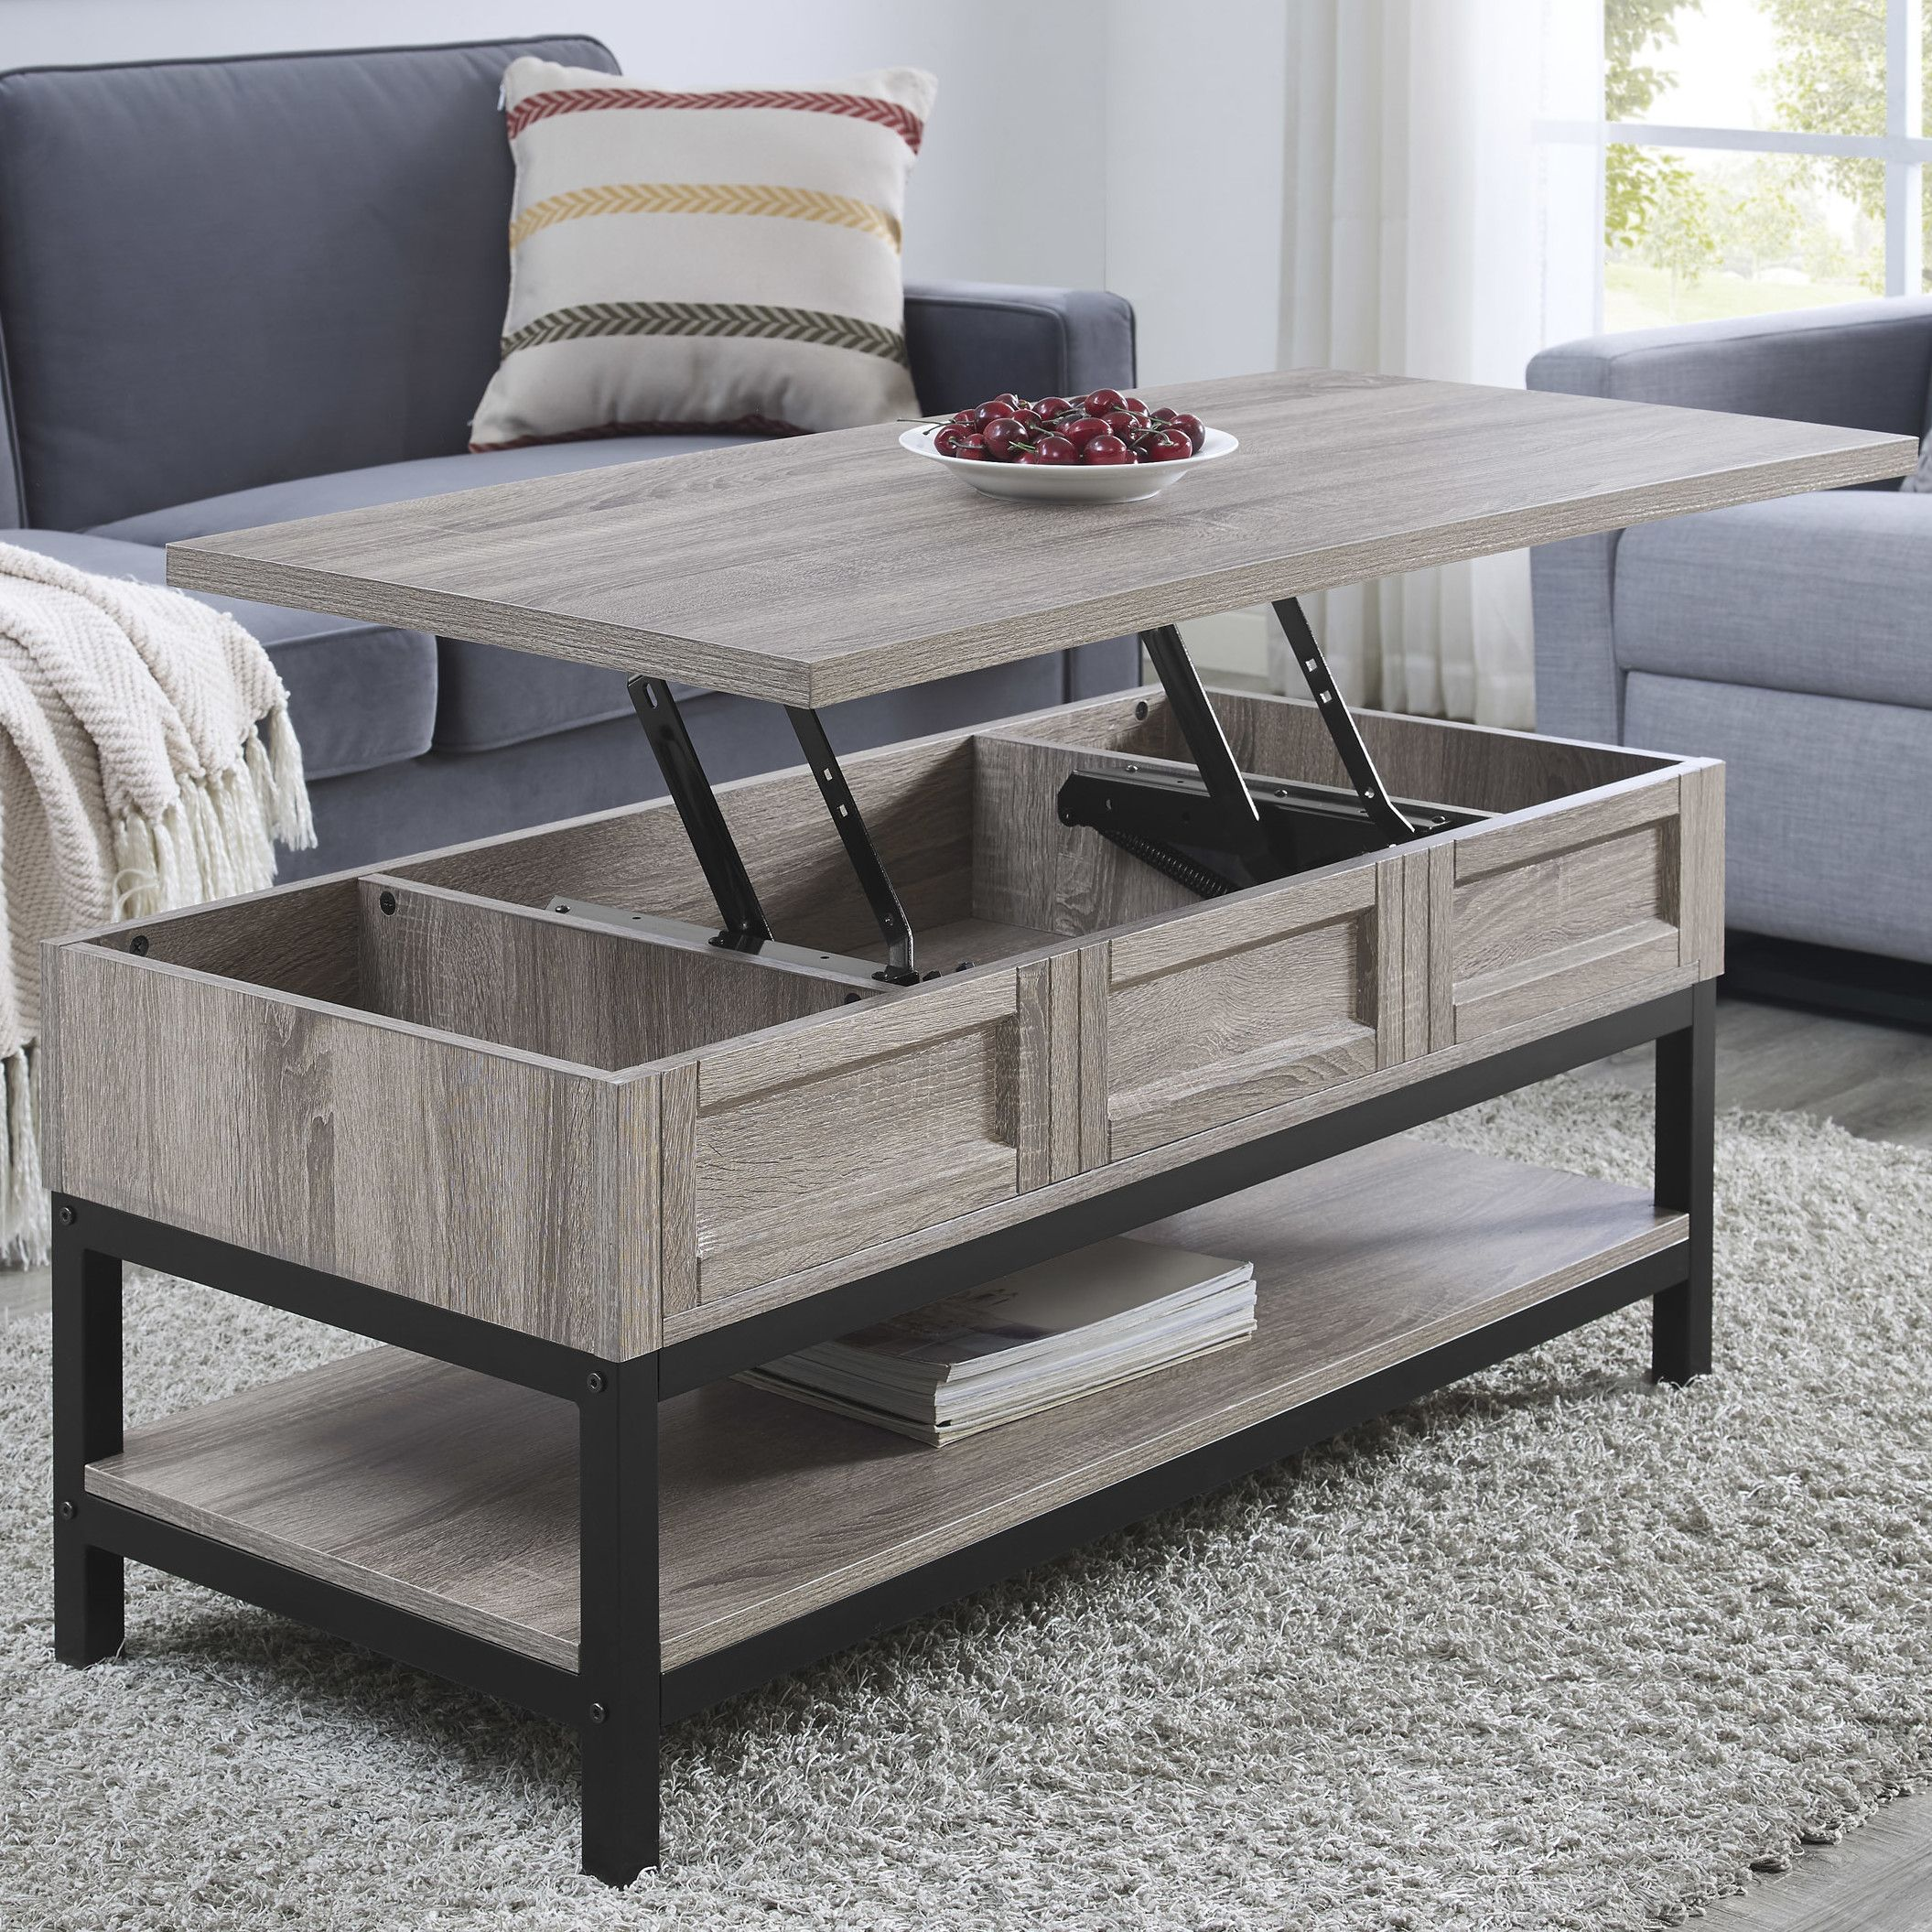 Laurel foundry modern farmhouse omar coffee table with lift top laurel foundry modern farmhouse omar coffee table with lift top reviews wayfair geotapseo Image collections